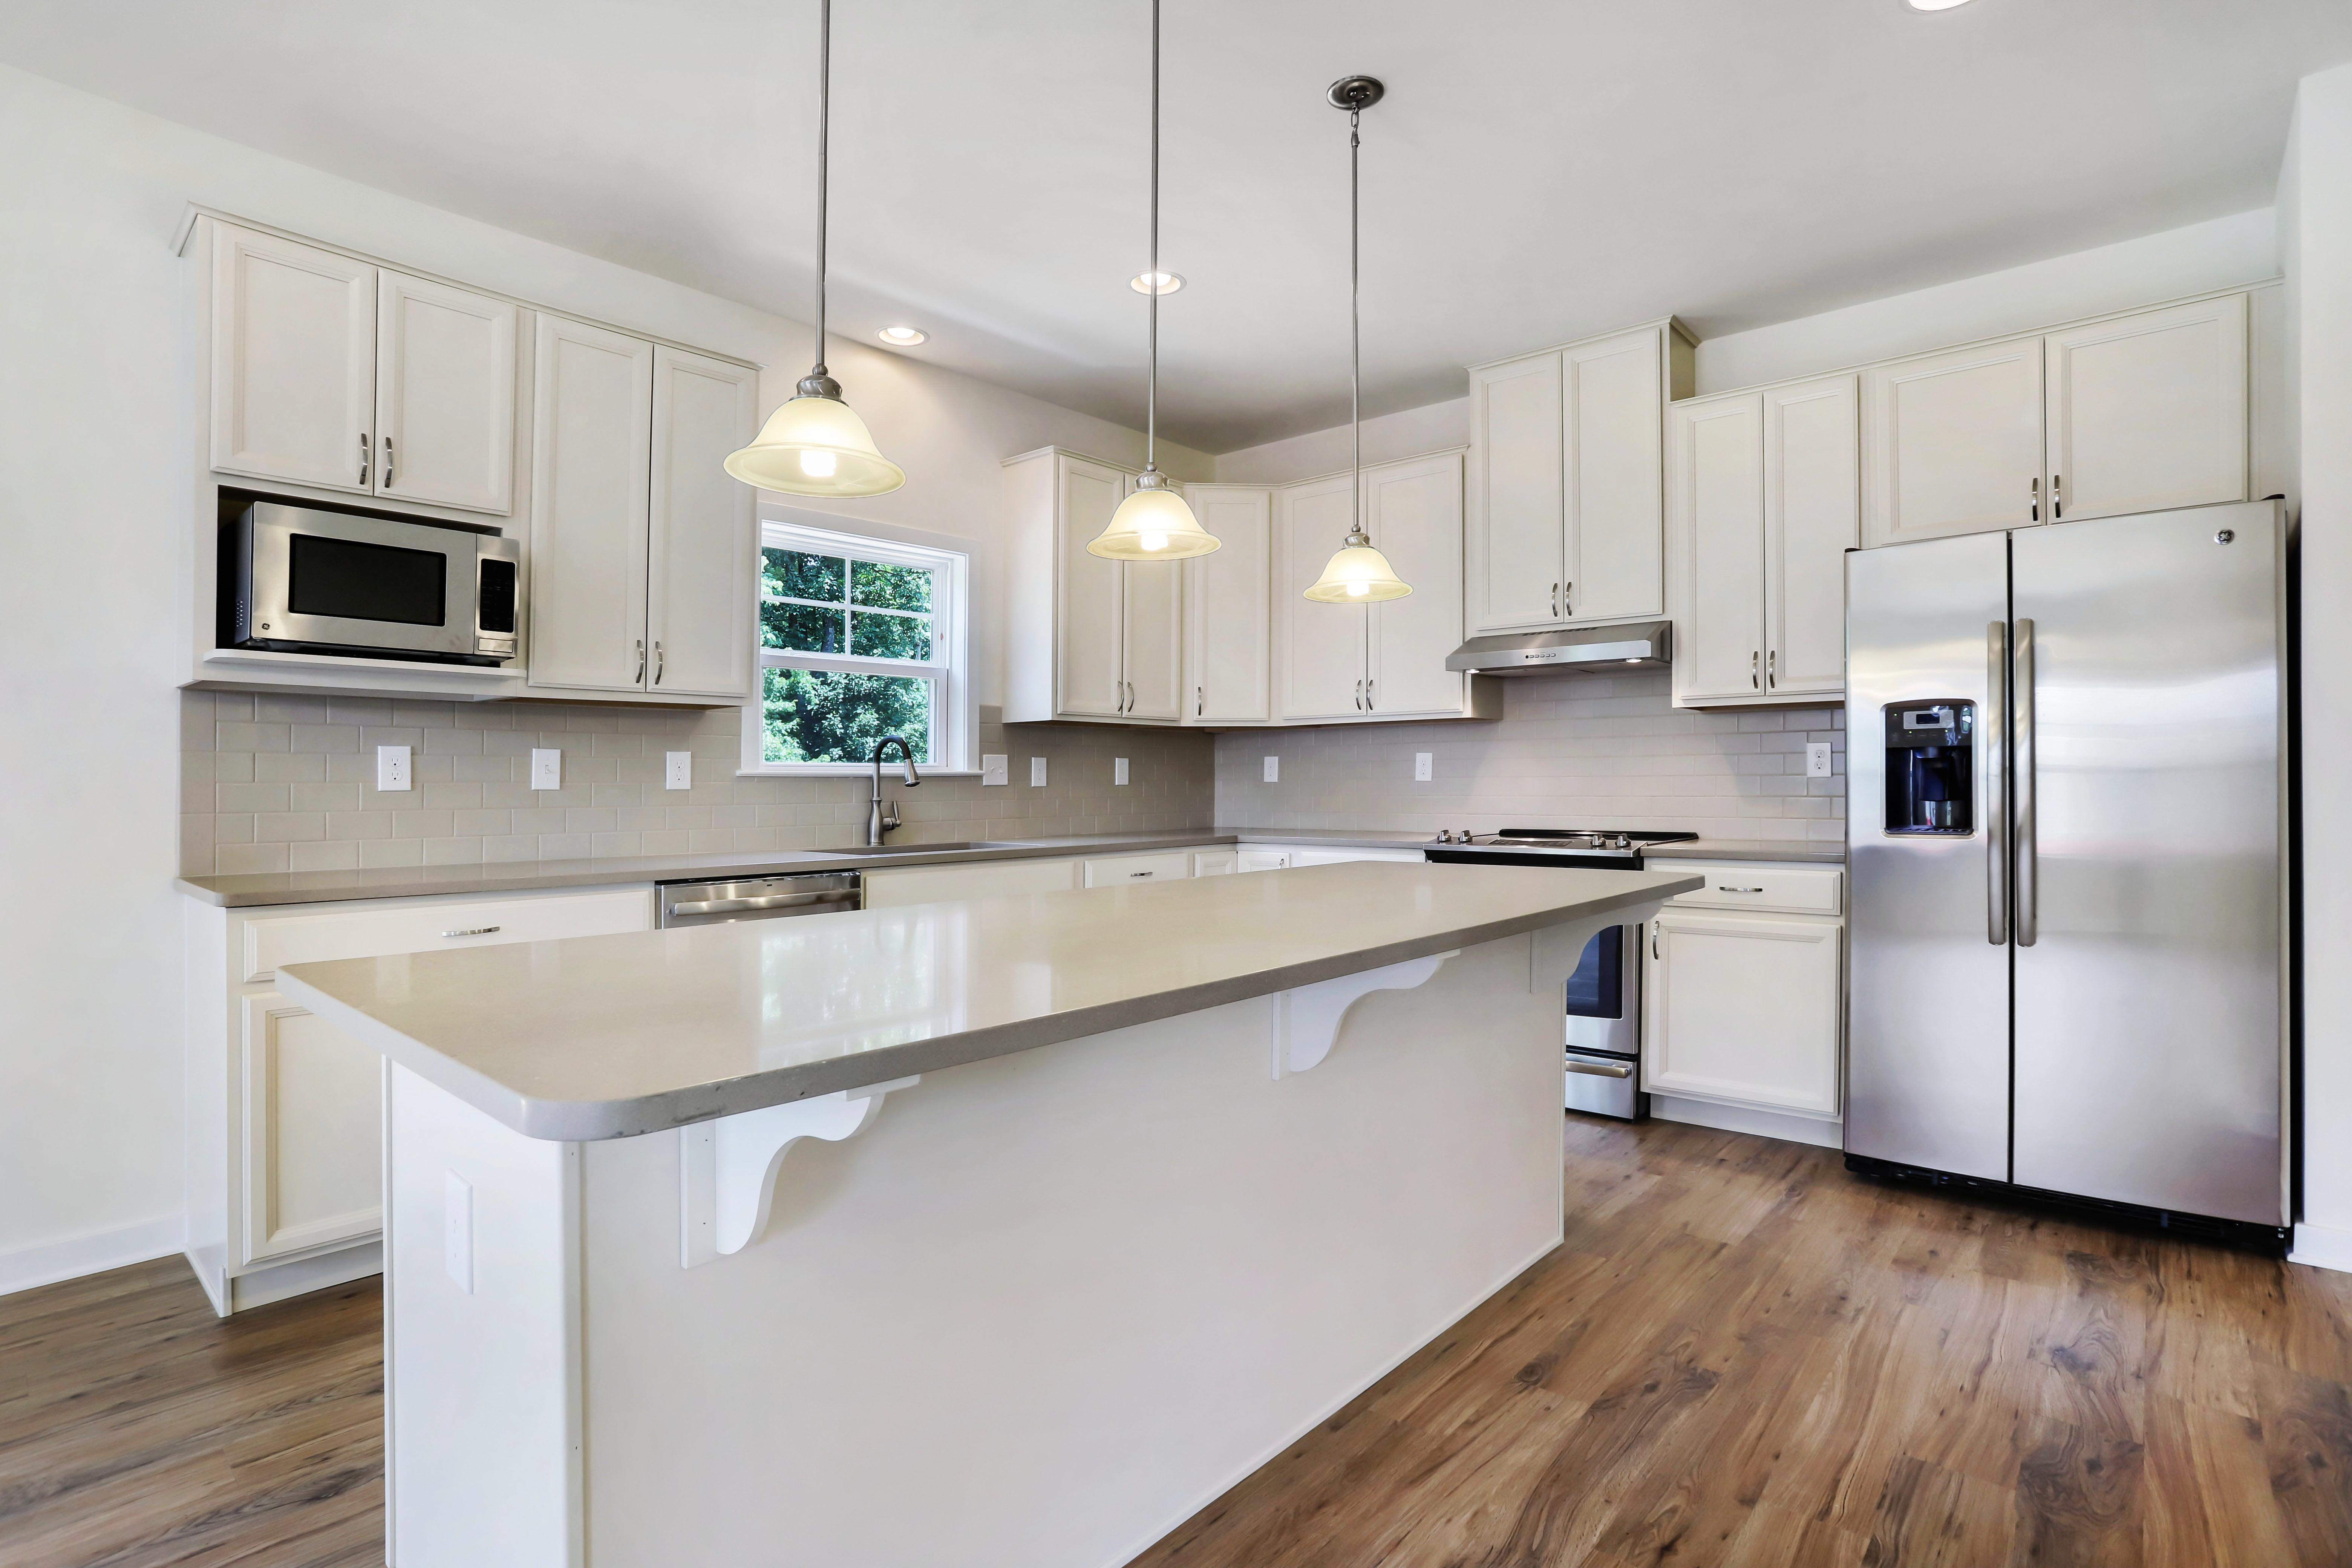 Kitchen featured in The Peyton By Panhandle Builders in Washington, WV